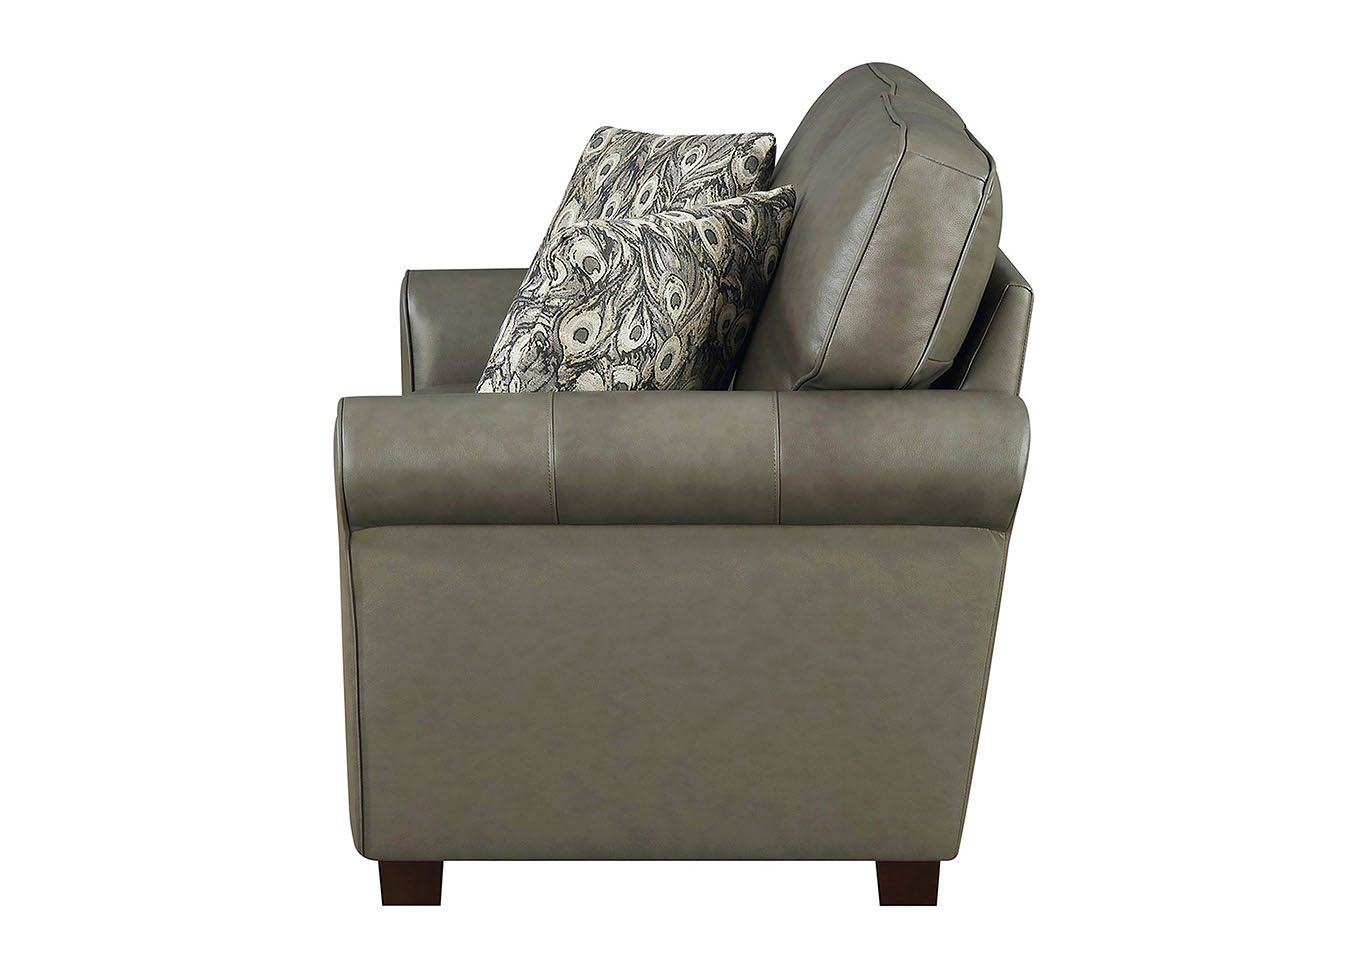 Swell Taba Home Furnishings April Gray Leather Match Stationary Machost Co Dining Chair Design Ideas Machostcouk